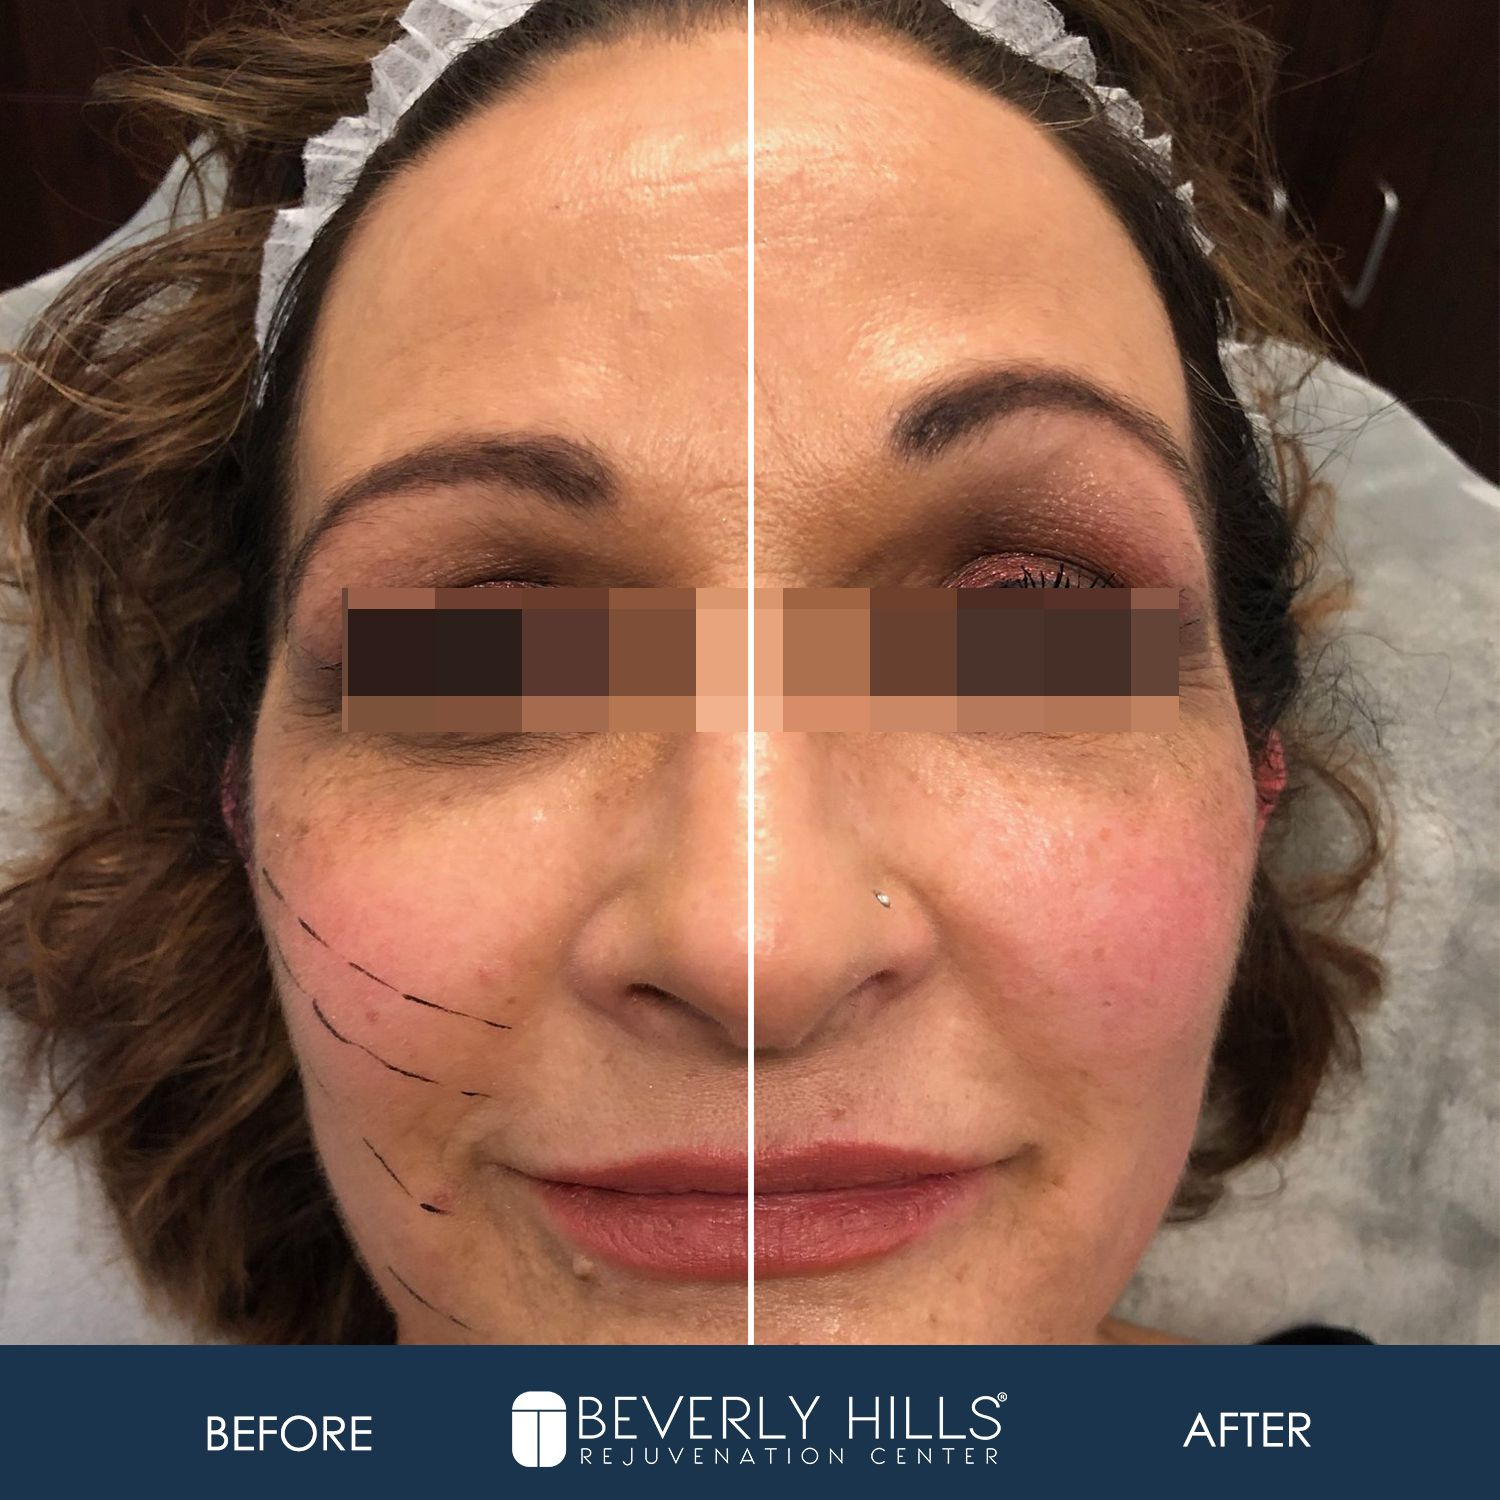 Chino Hills Medical Spa Ca Beverly Hills Rejuvenation Center Non Surgical Facelift Facelift Chino Hills